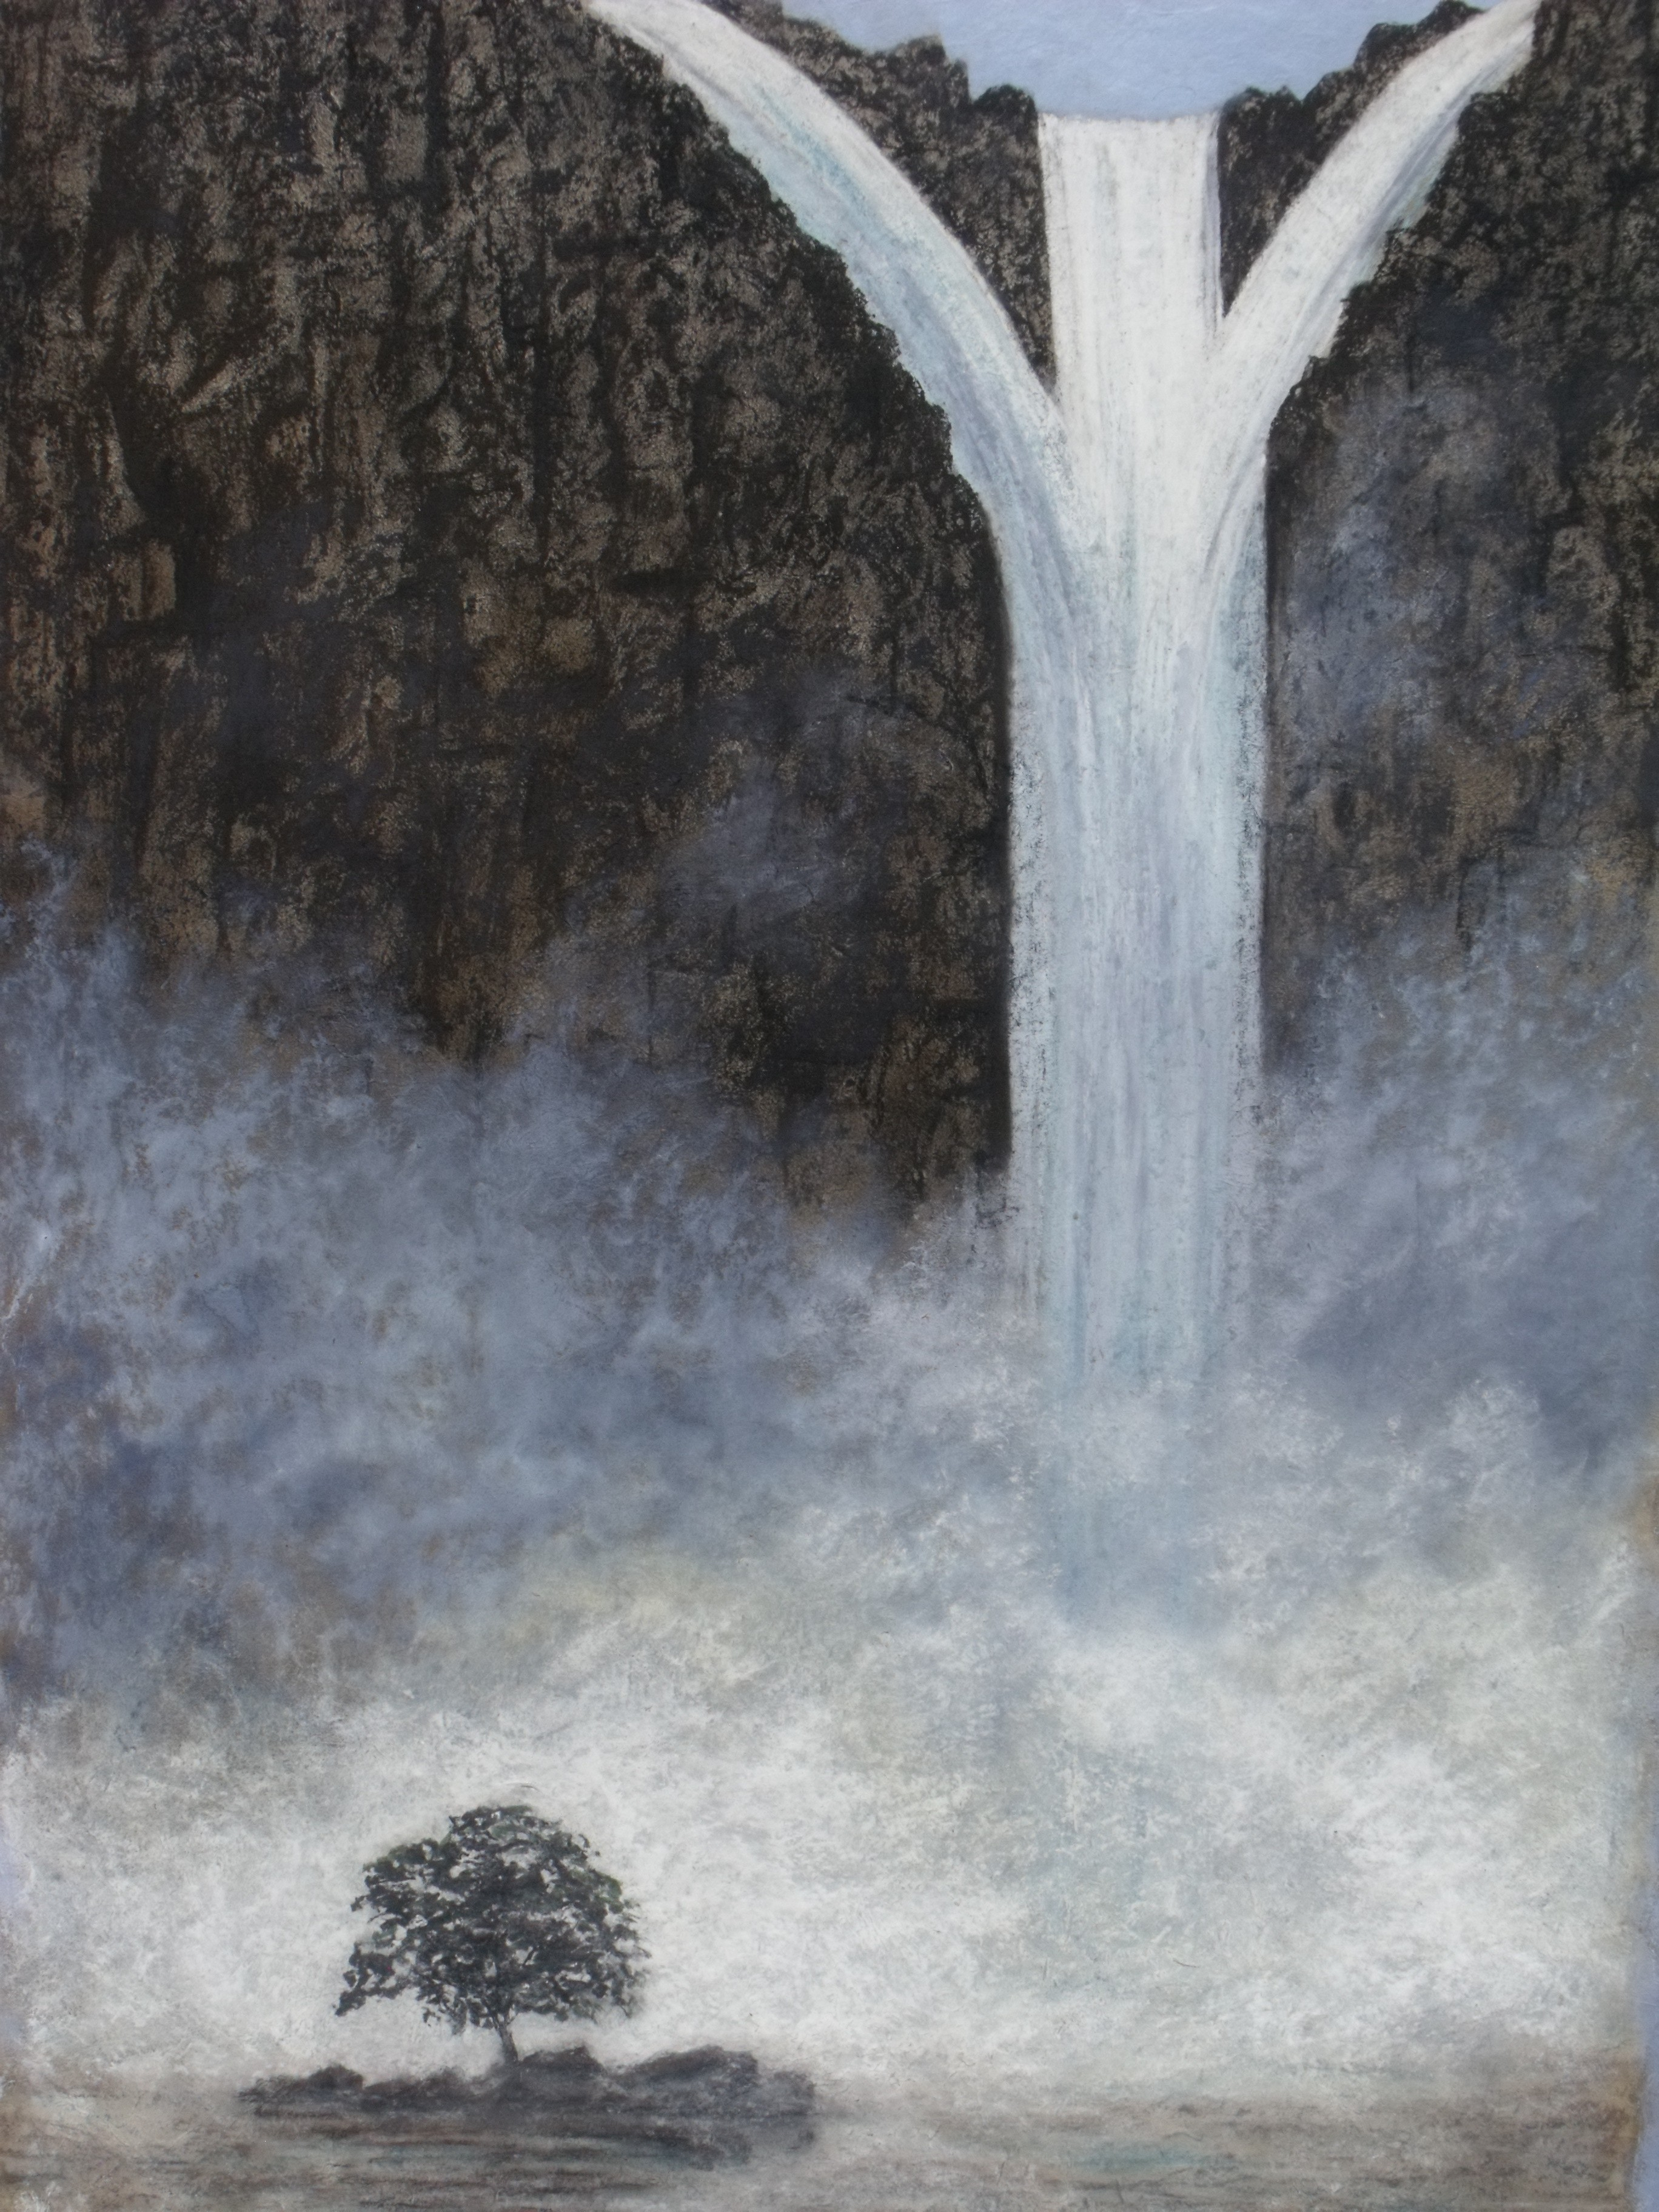 Wildlife paintings, Waterfall | Tracts4free